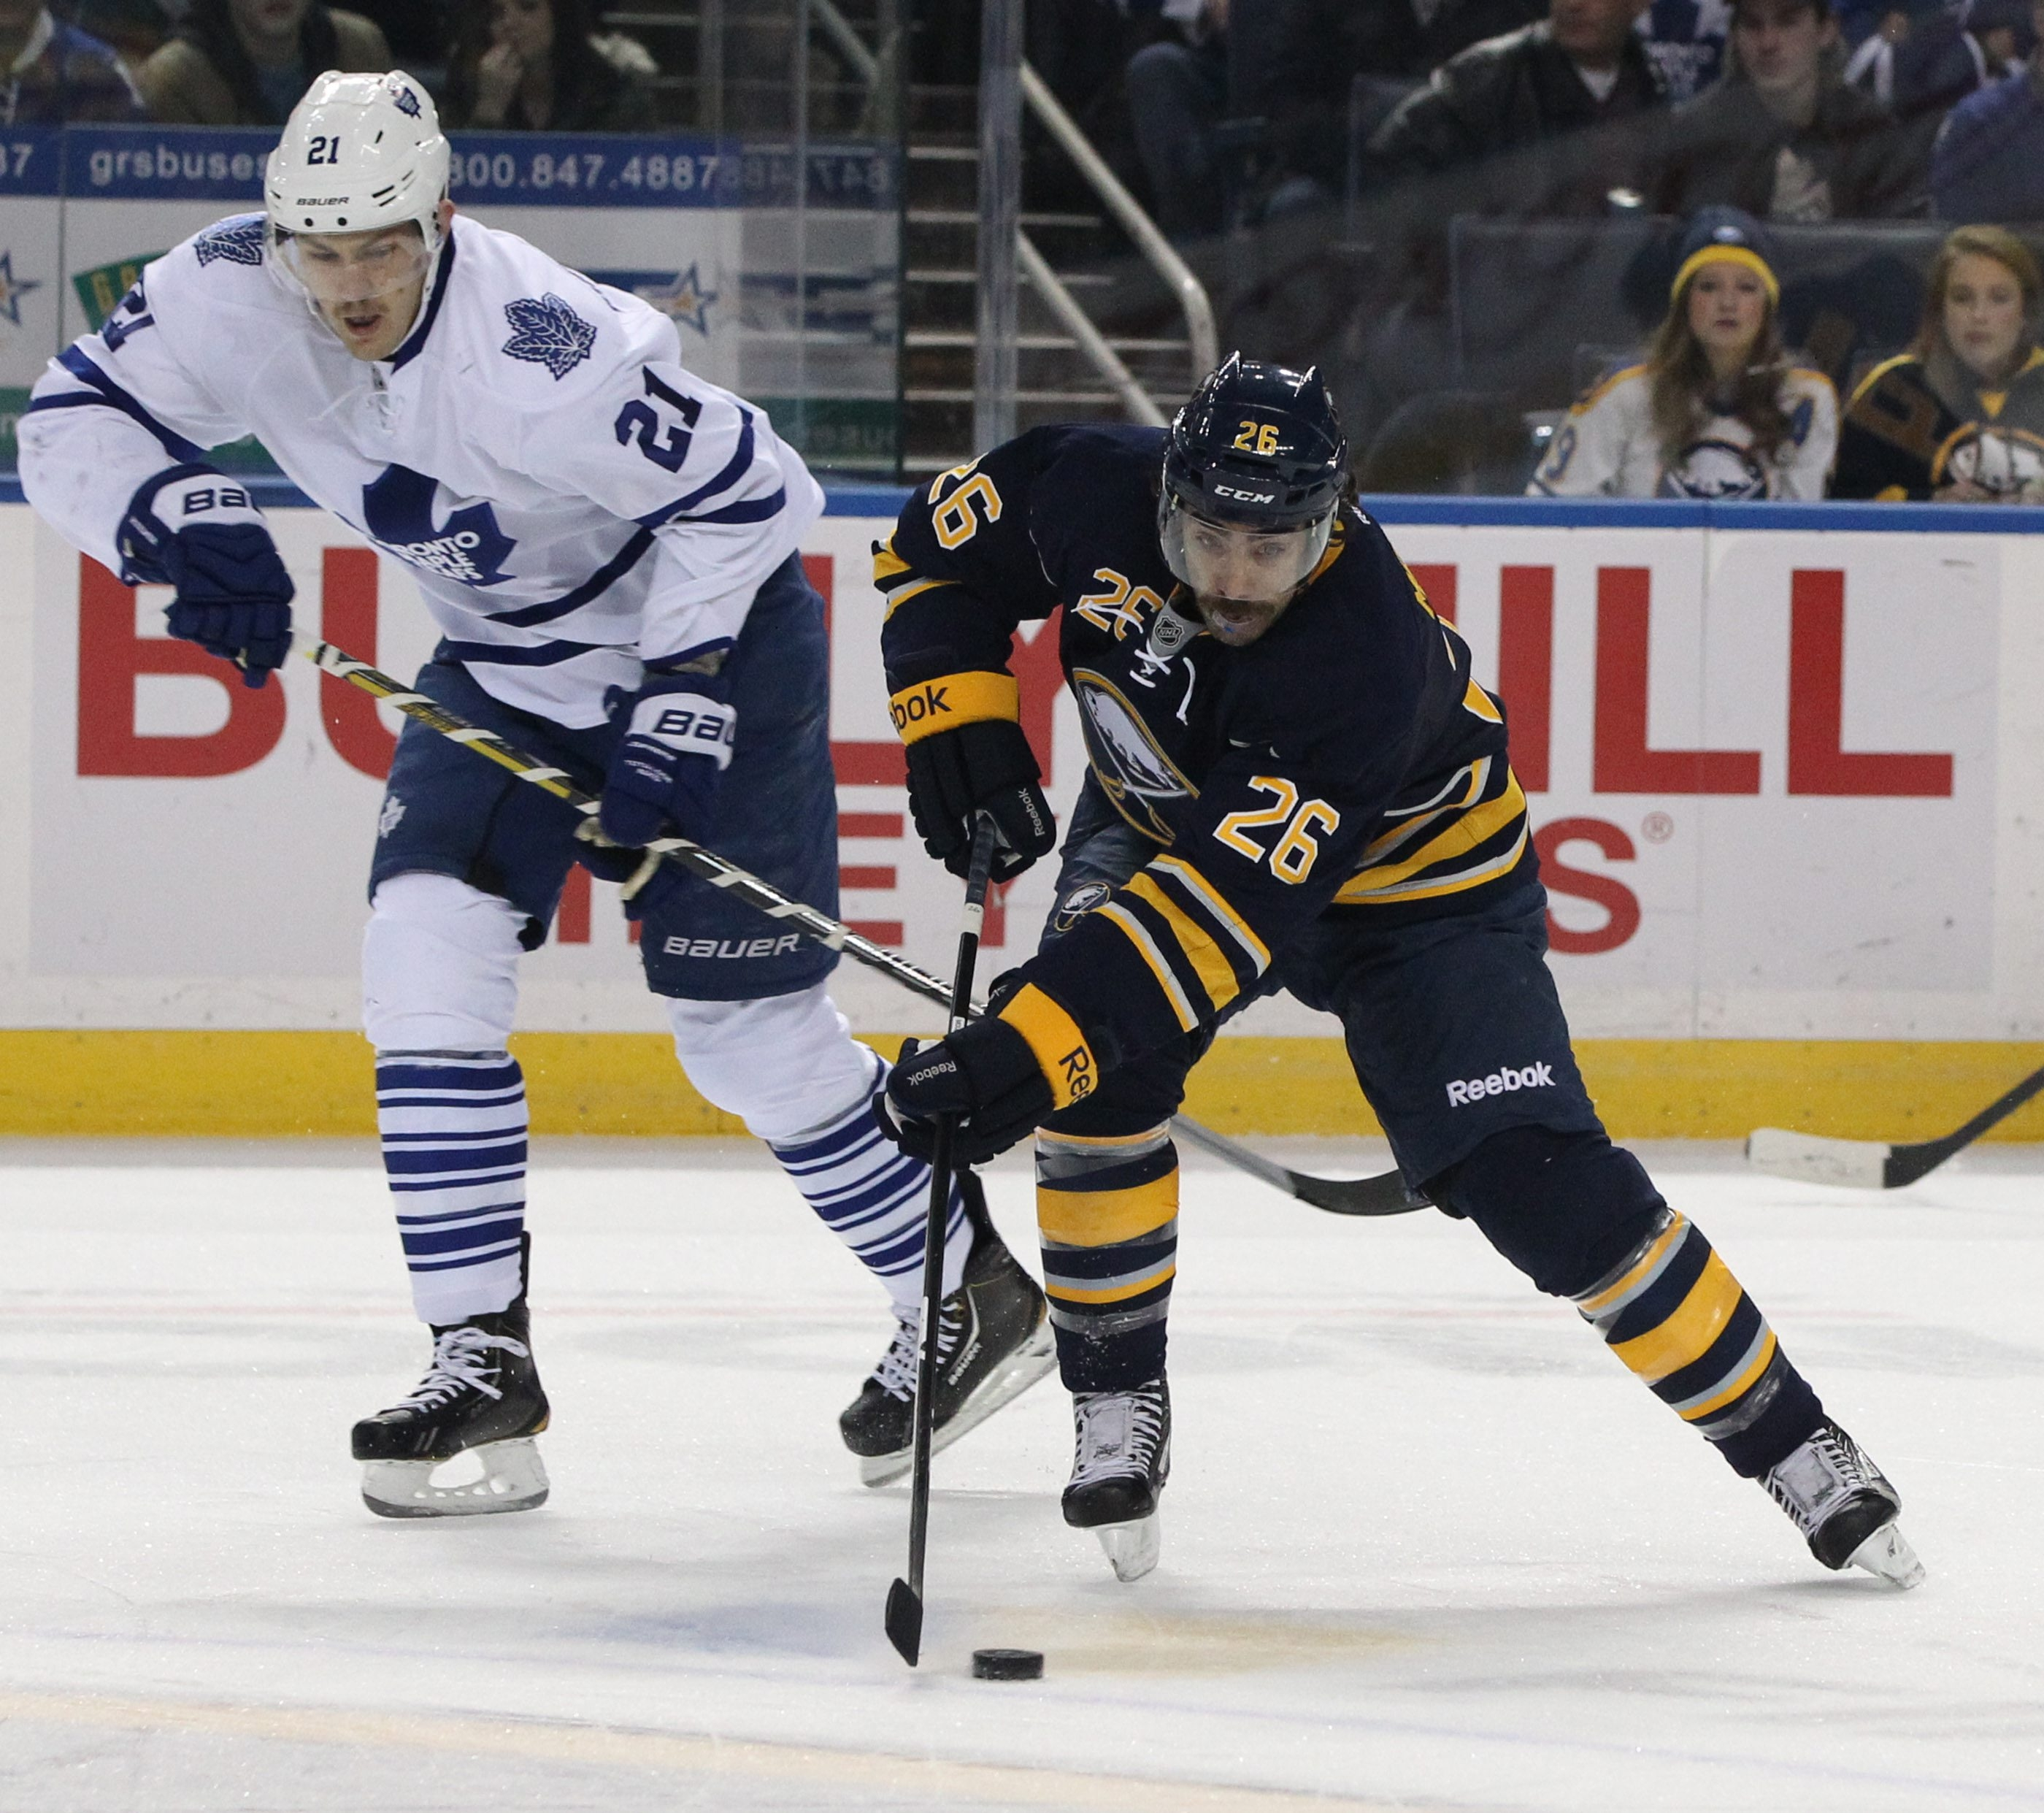 Buffalo Sabres left wing Matt Moulson (26) skates with the puck past Toronto Maple Leafs left wing James van Riemsdyk (21) in the first period at the First Niagara Center in Buffalo,NY on Friday, Nov. 29, 2013.  (James P. McCoy/ Buffalo News)